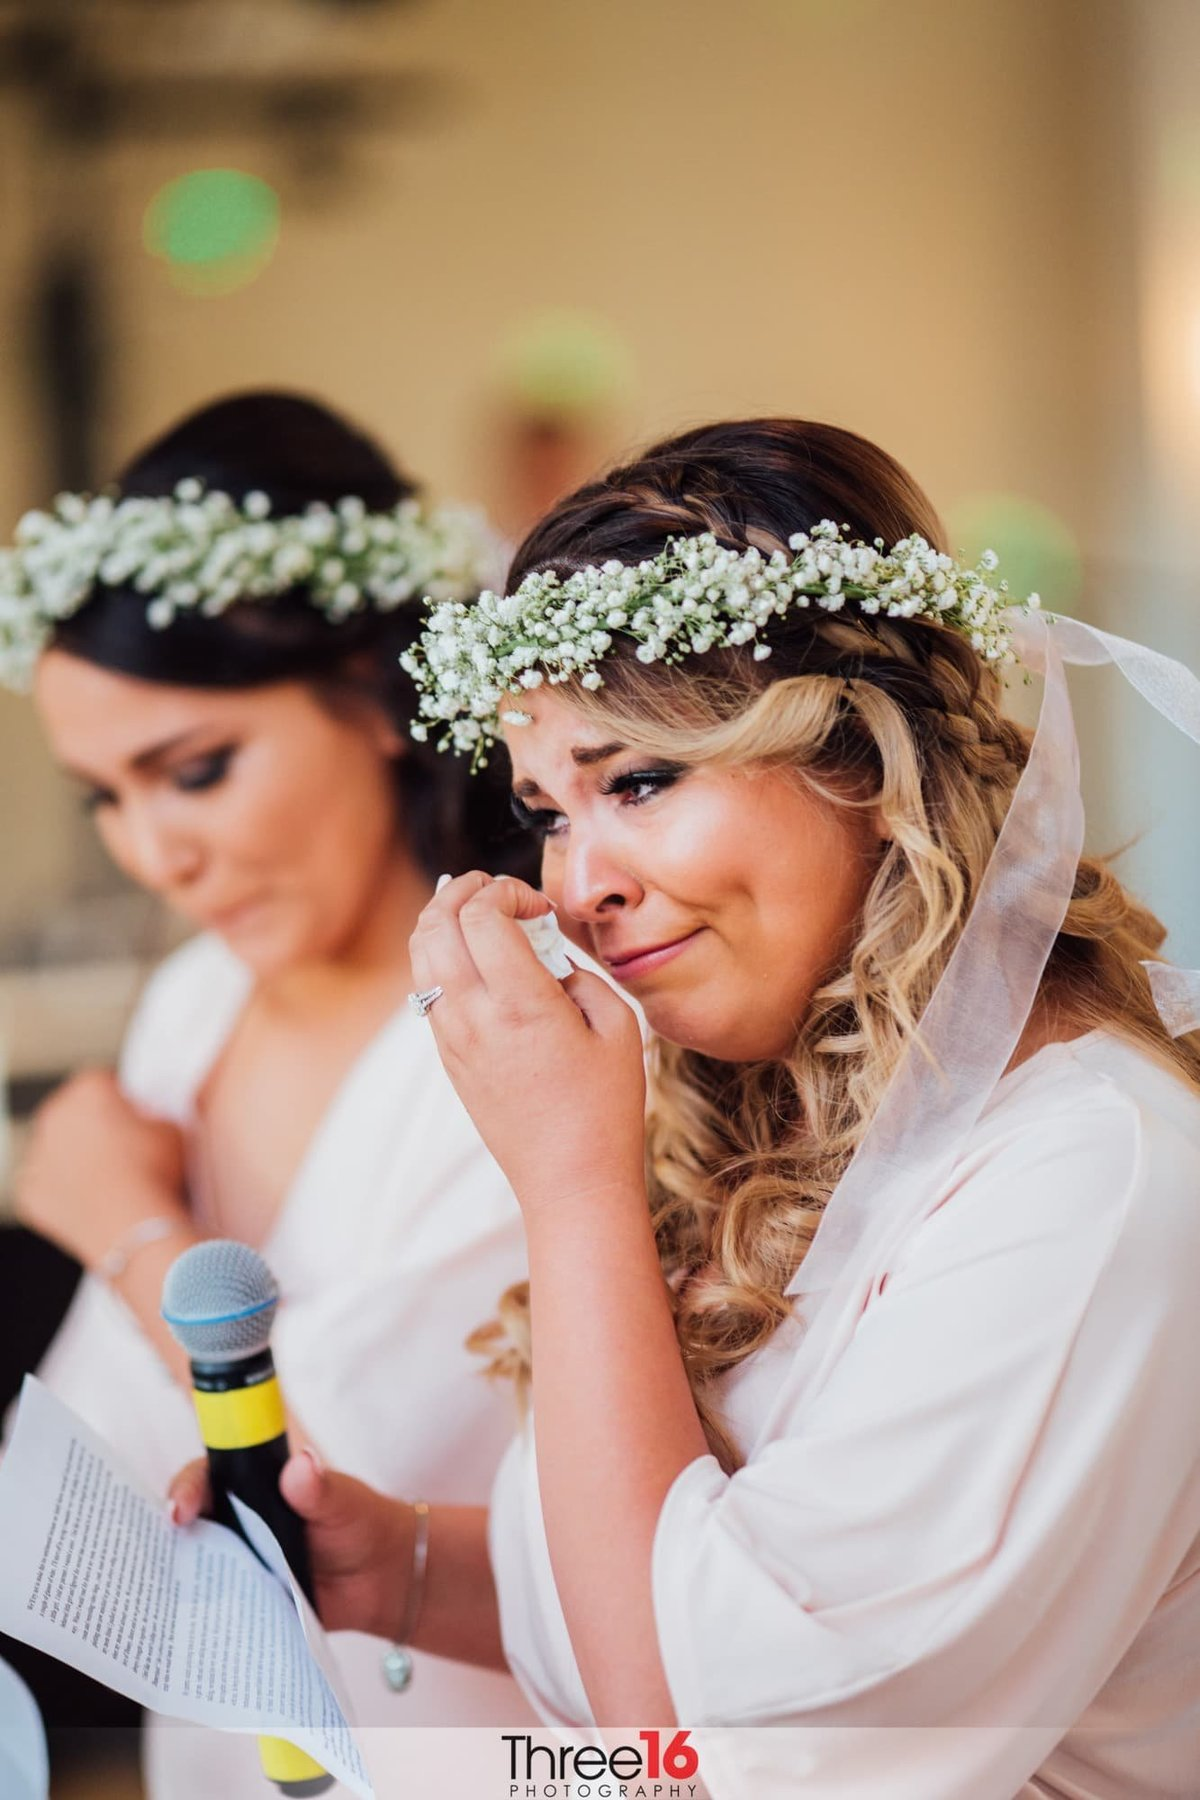 Maid of Honor sheds a tear while delivering her toast